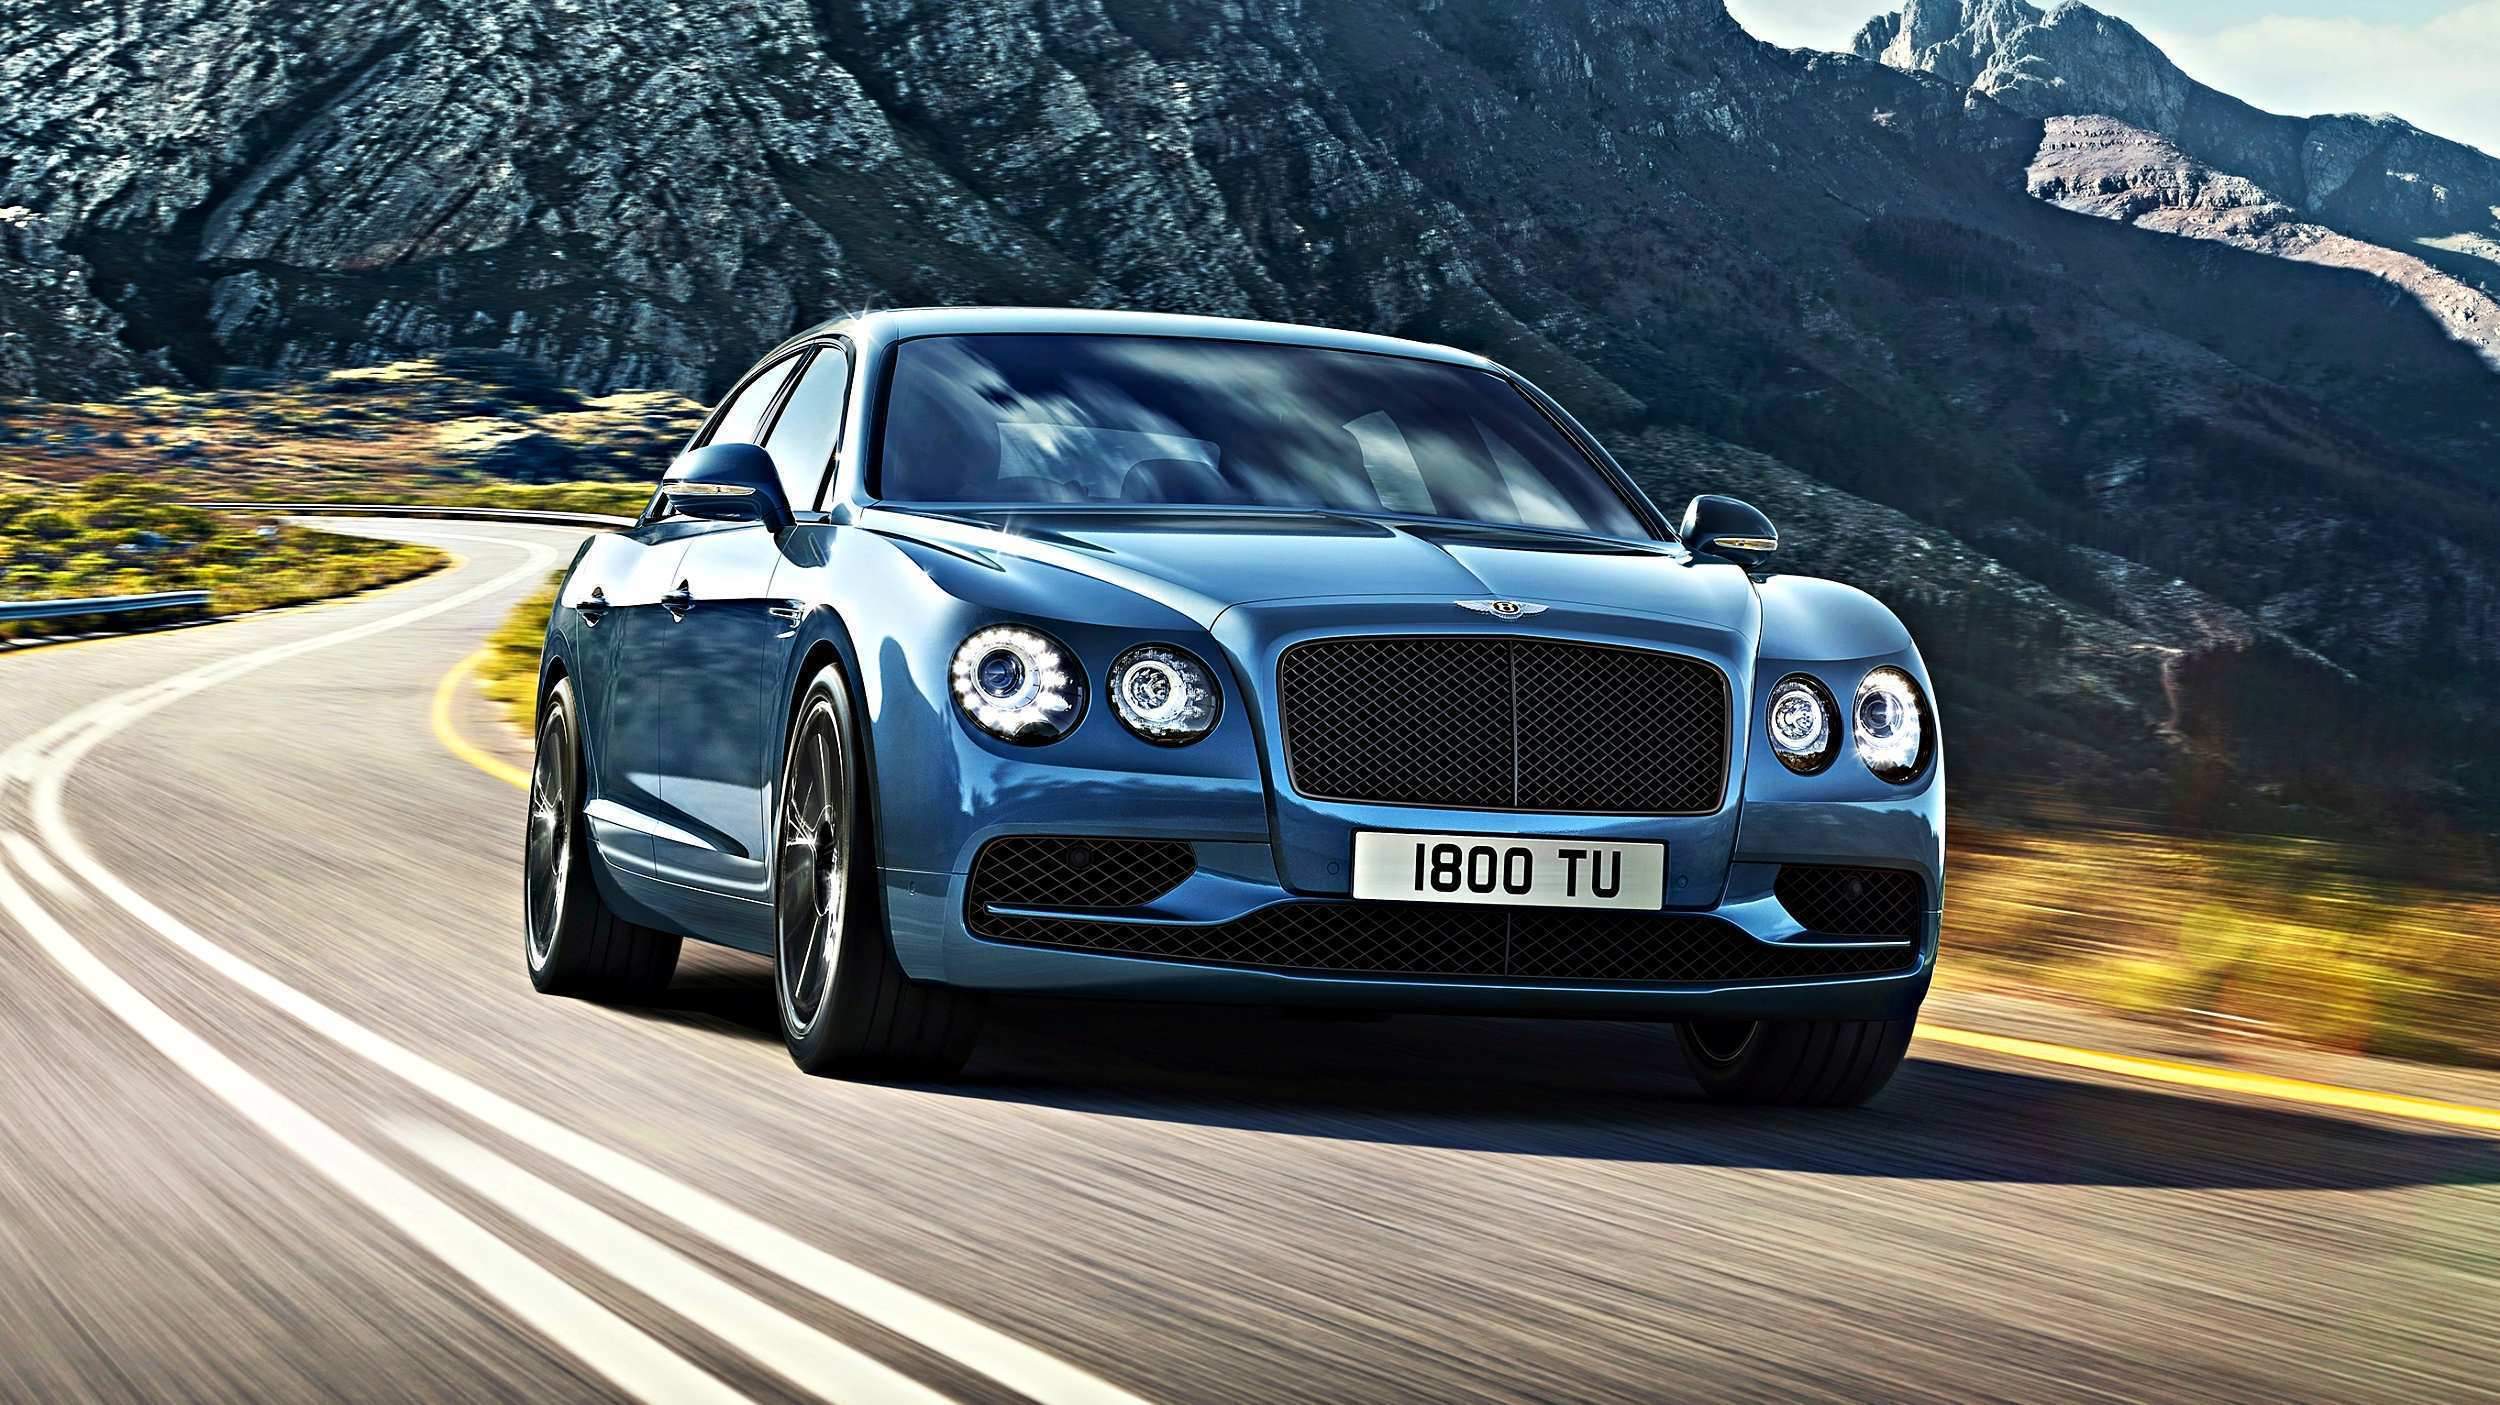 77 New 2019 Bentley Flying Spur Prices with 2019 Bentley Flying Spur